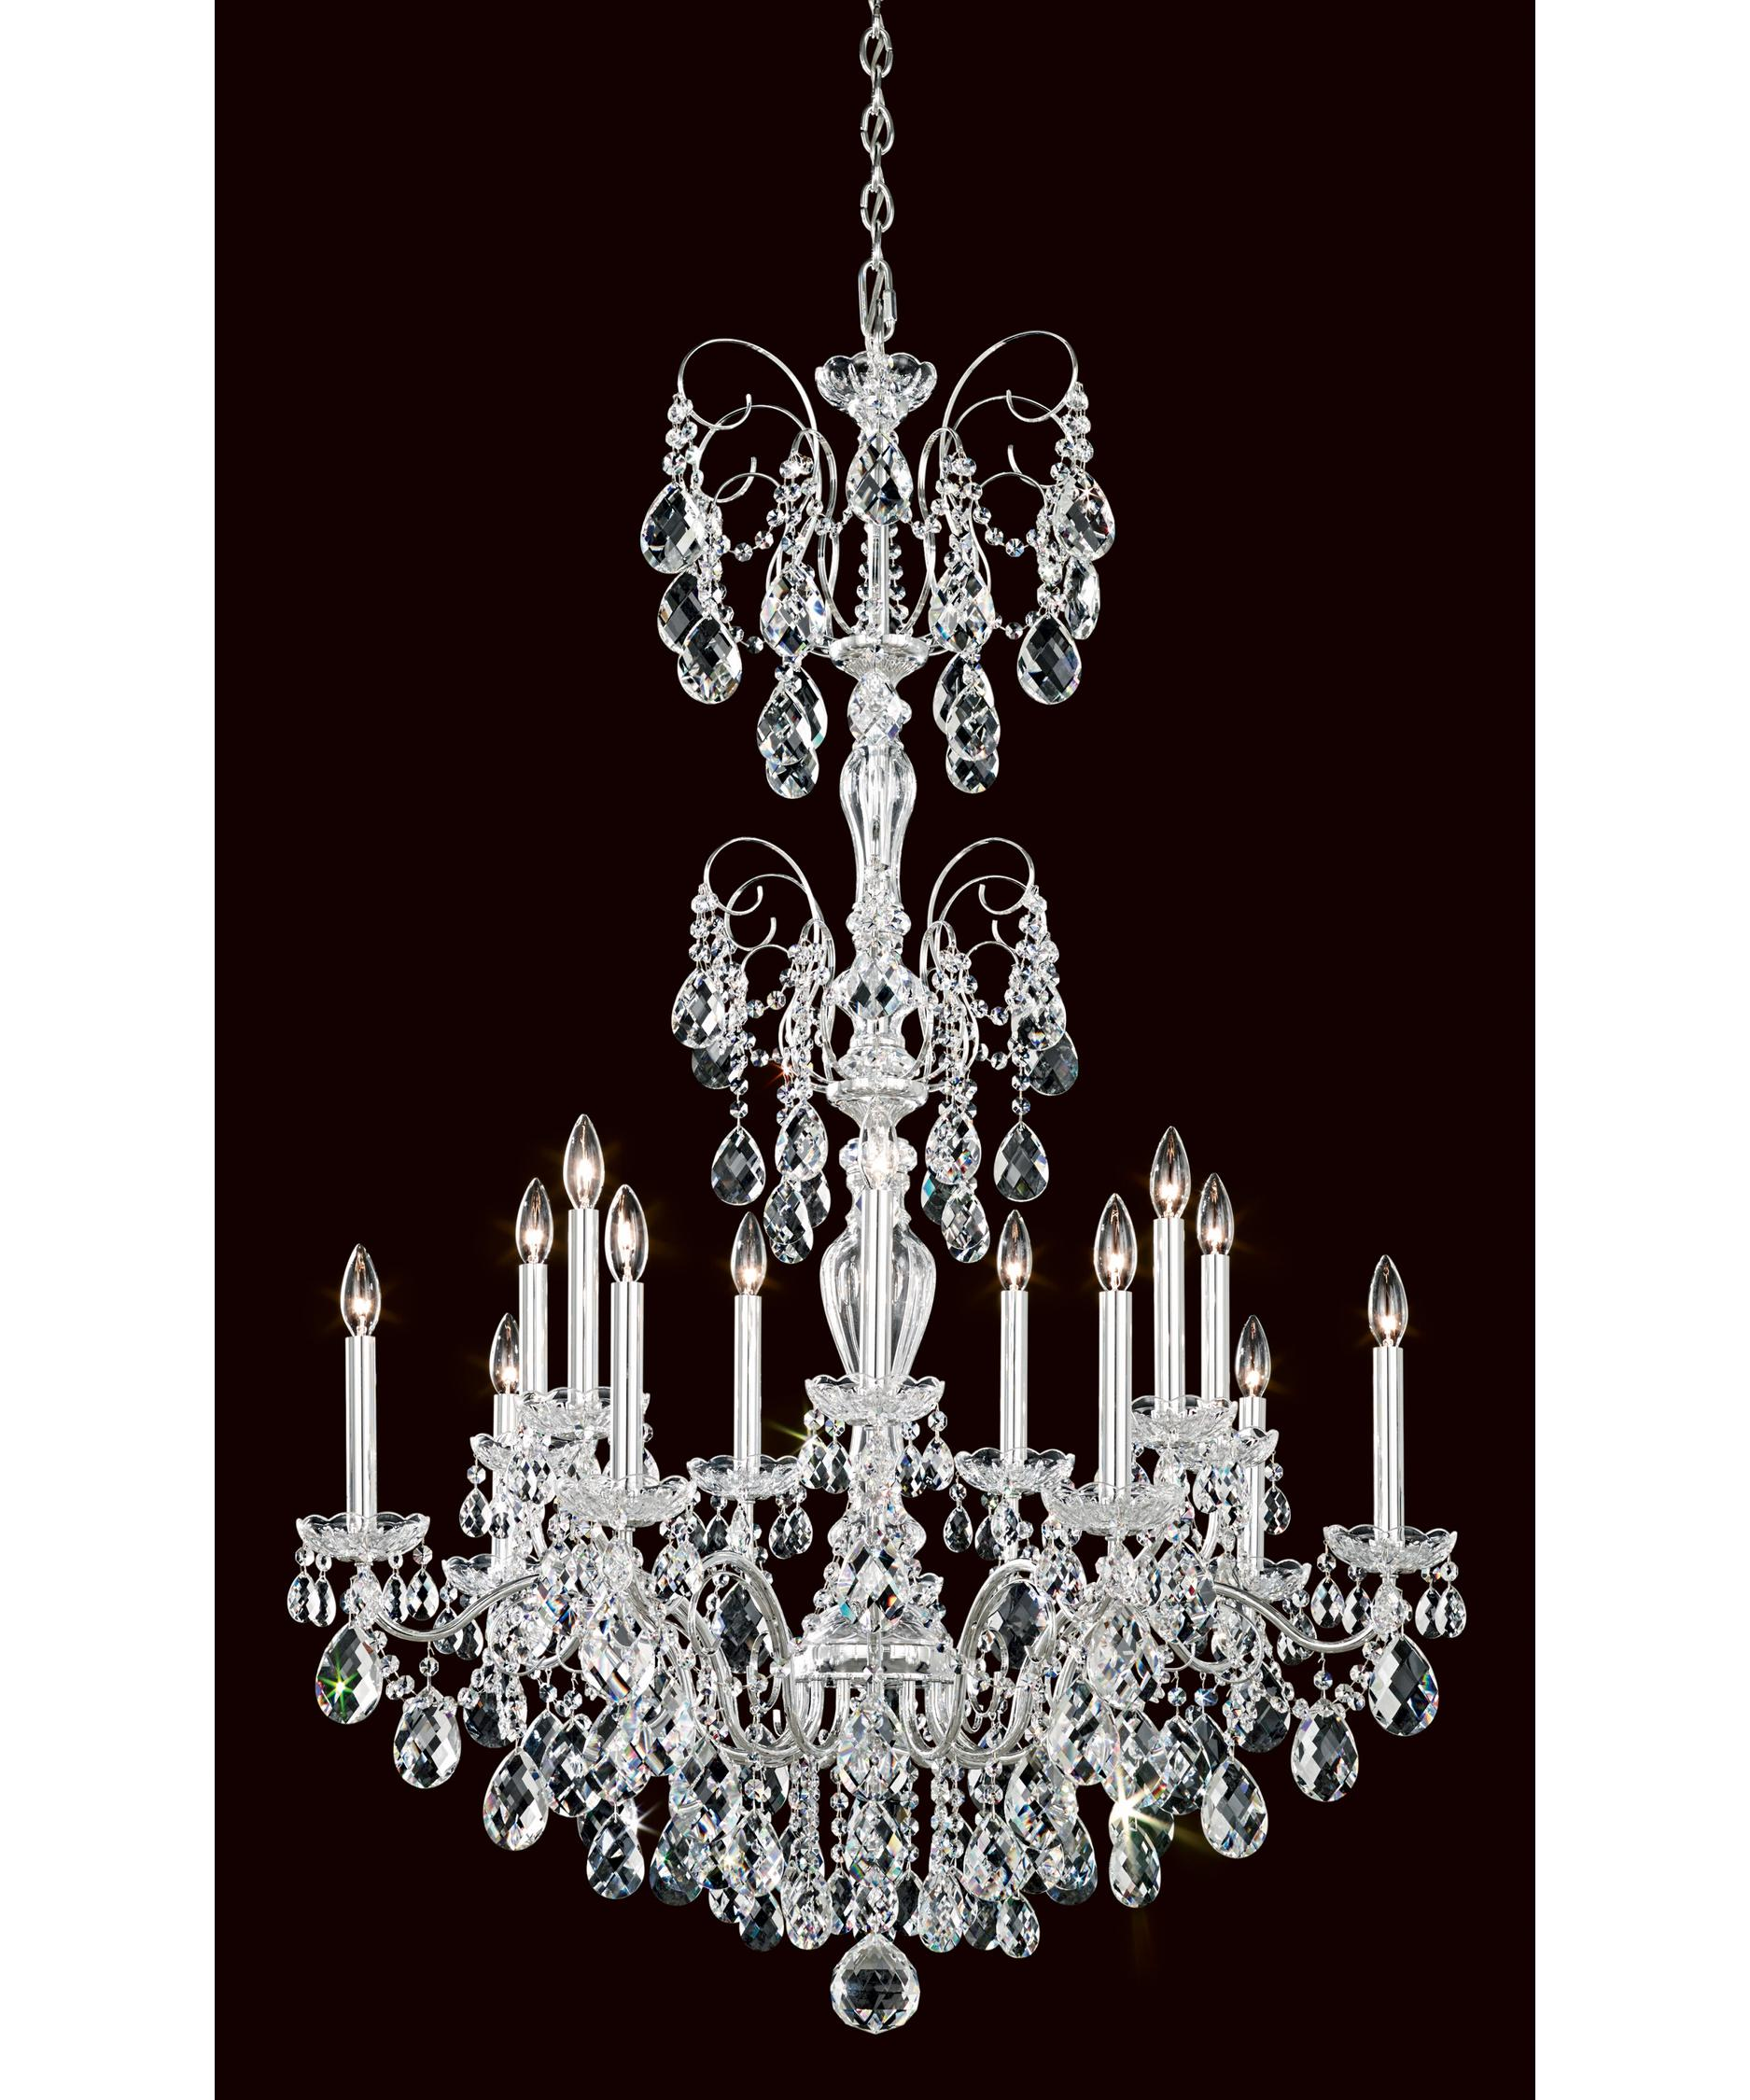 schonbek st1952 sonatina 35 inch wide 14 light chandelier capitol lighting - Schonbek Lighting